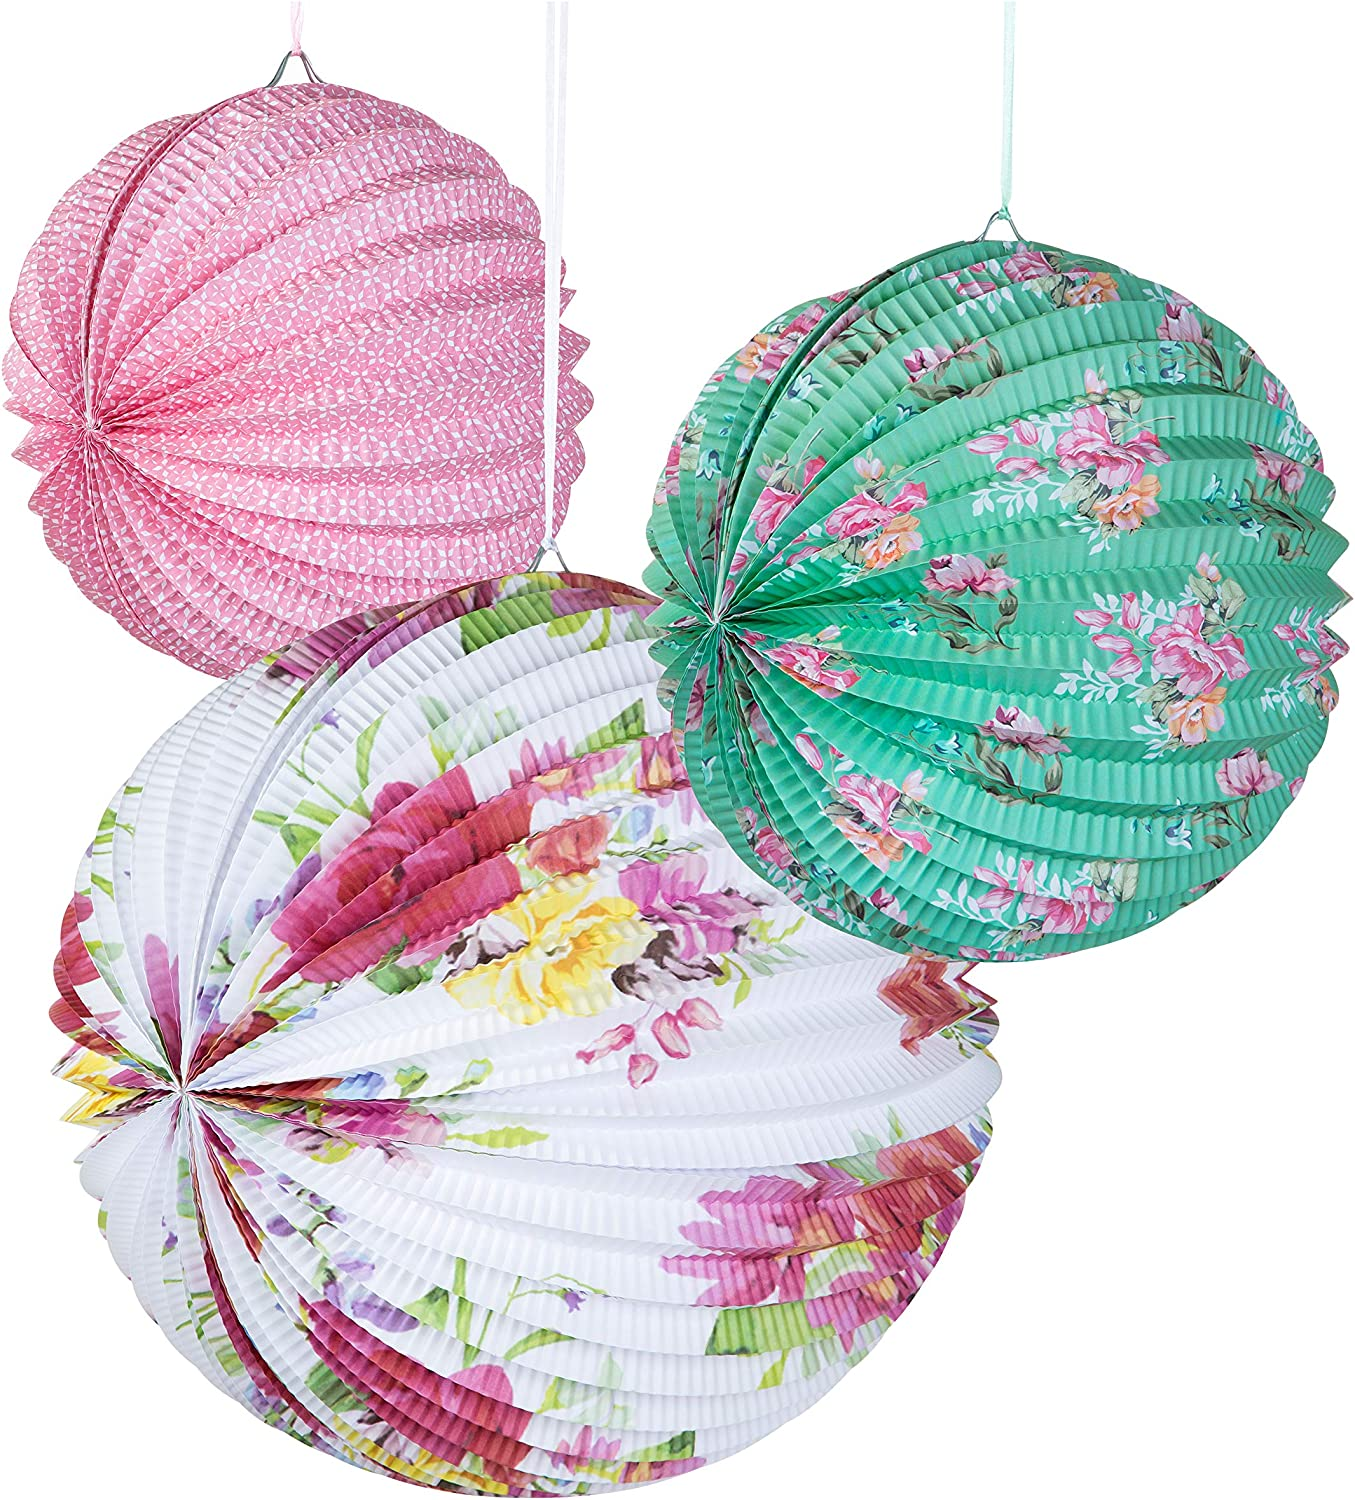 Talking Tables Tea Party Decorations Floral Paper Lantern Plates Vintage Party for Birthdays, Bridal shower, Baby shower, 3 Sizes, Pack of 3, Pastel colors, Model: